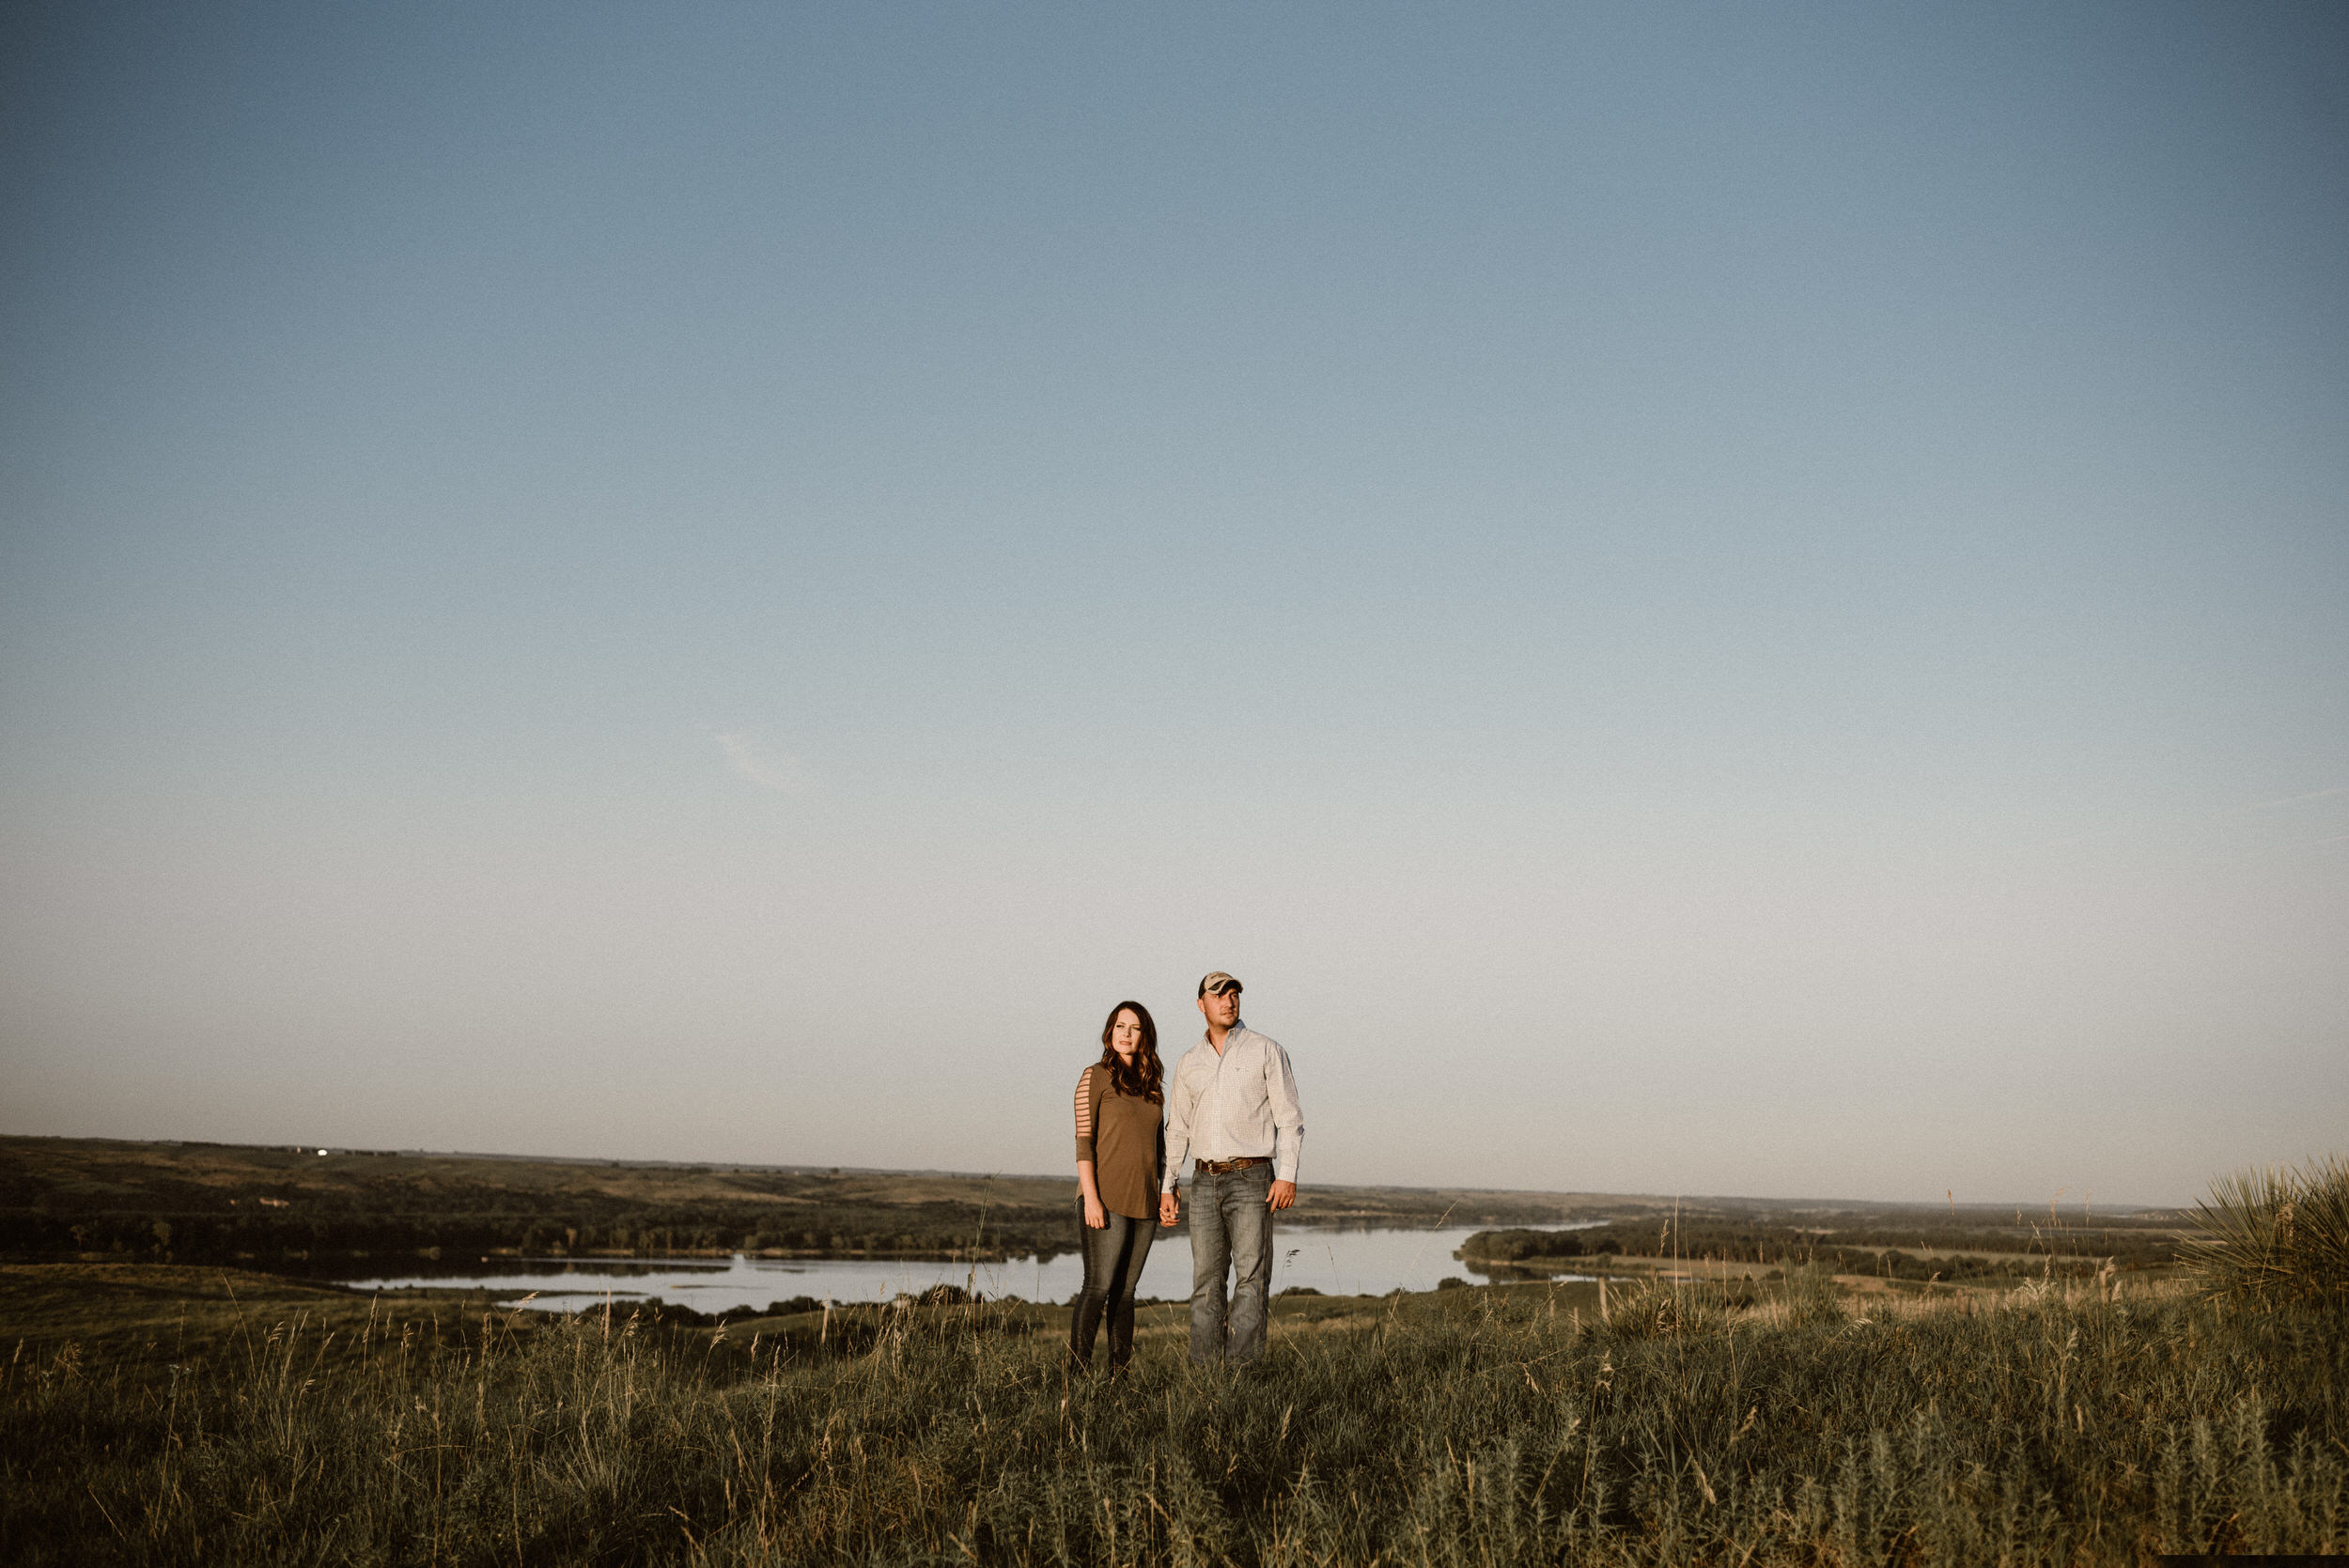 Lynch Nebraska Engagement Session Kaylie Sirek Photography 06.jpg